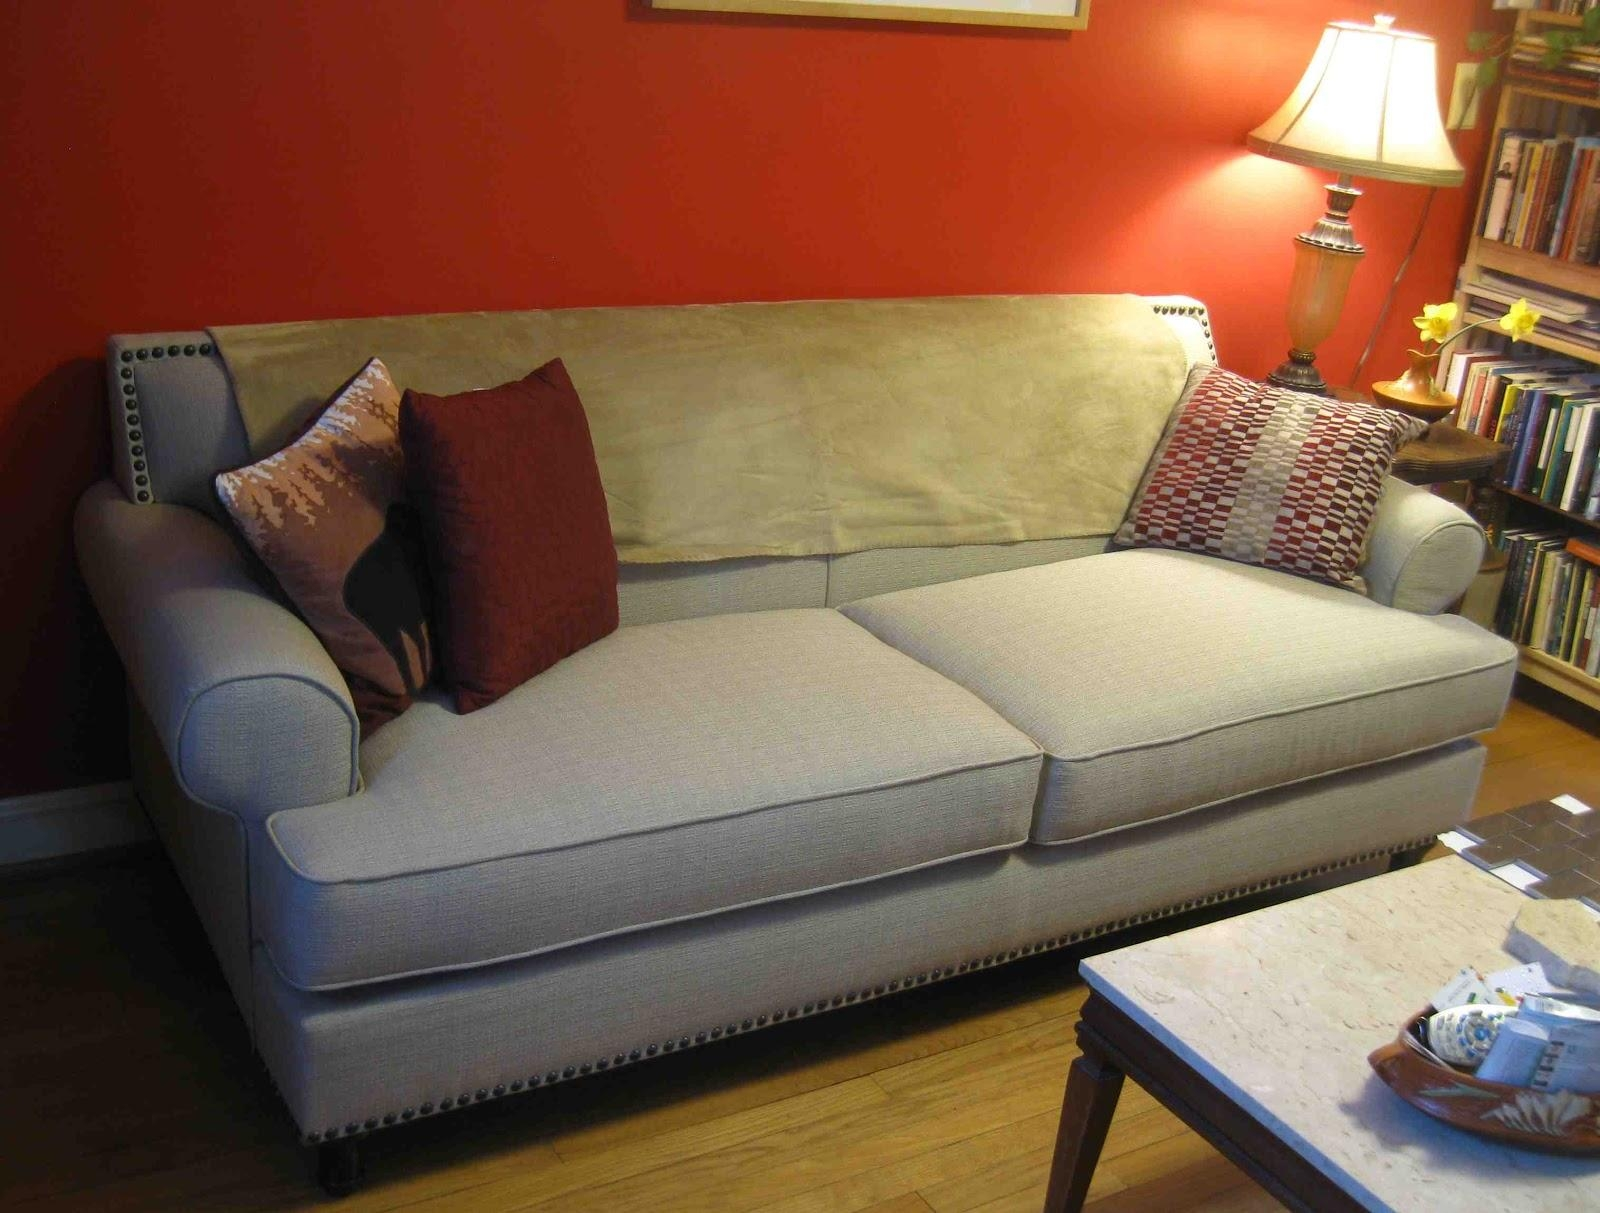 Pier One Carmen Sofa With Inspiration Ideas 22833 | Kengire Regarding Pier 1 Carmen Sofas (View 4 of 20)